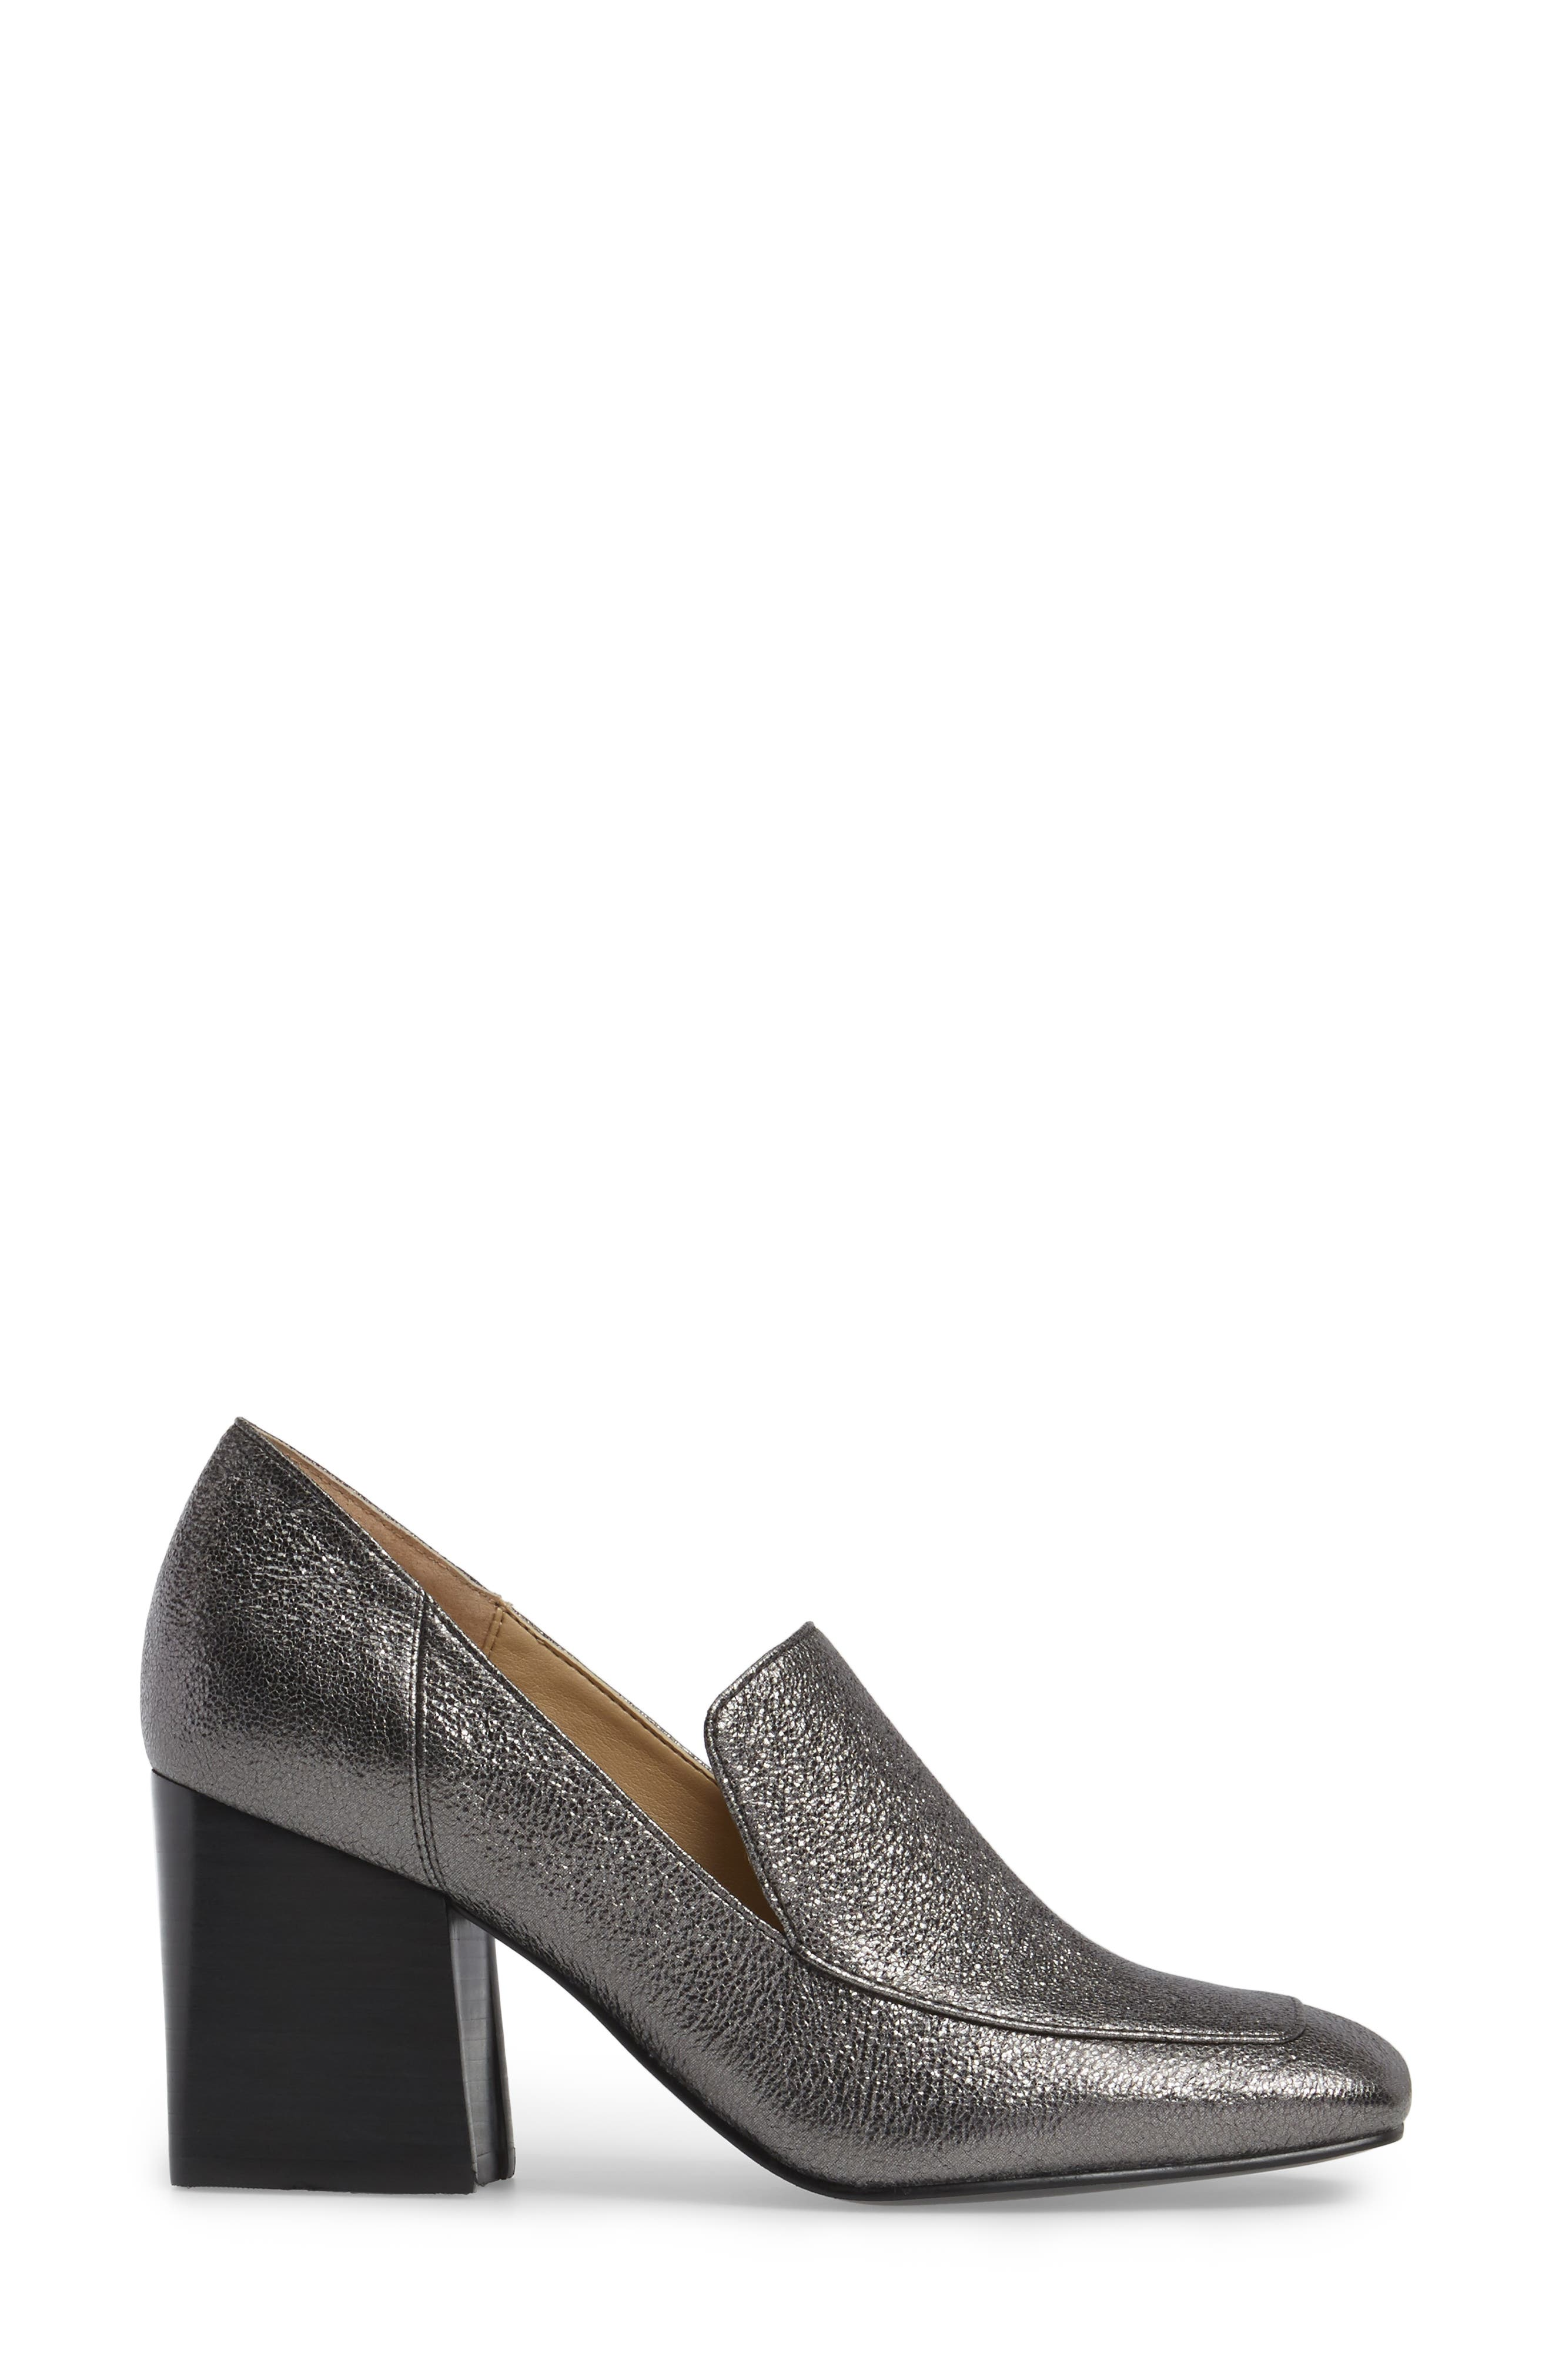 Marlo Loafer Pump,                             Alternate thumbnail 14, color,